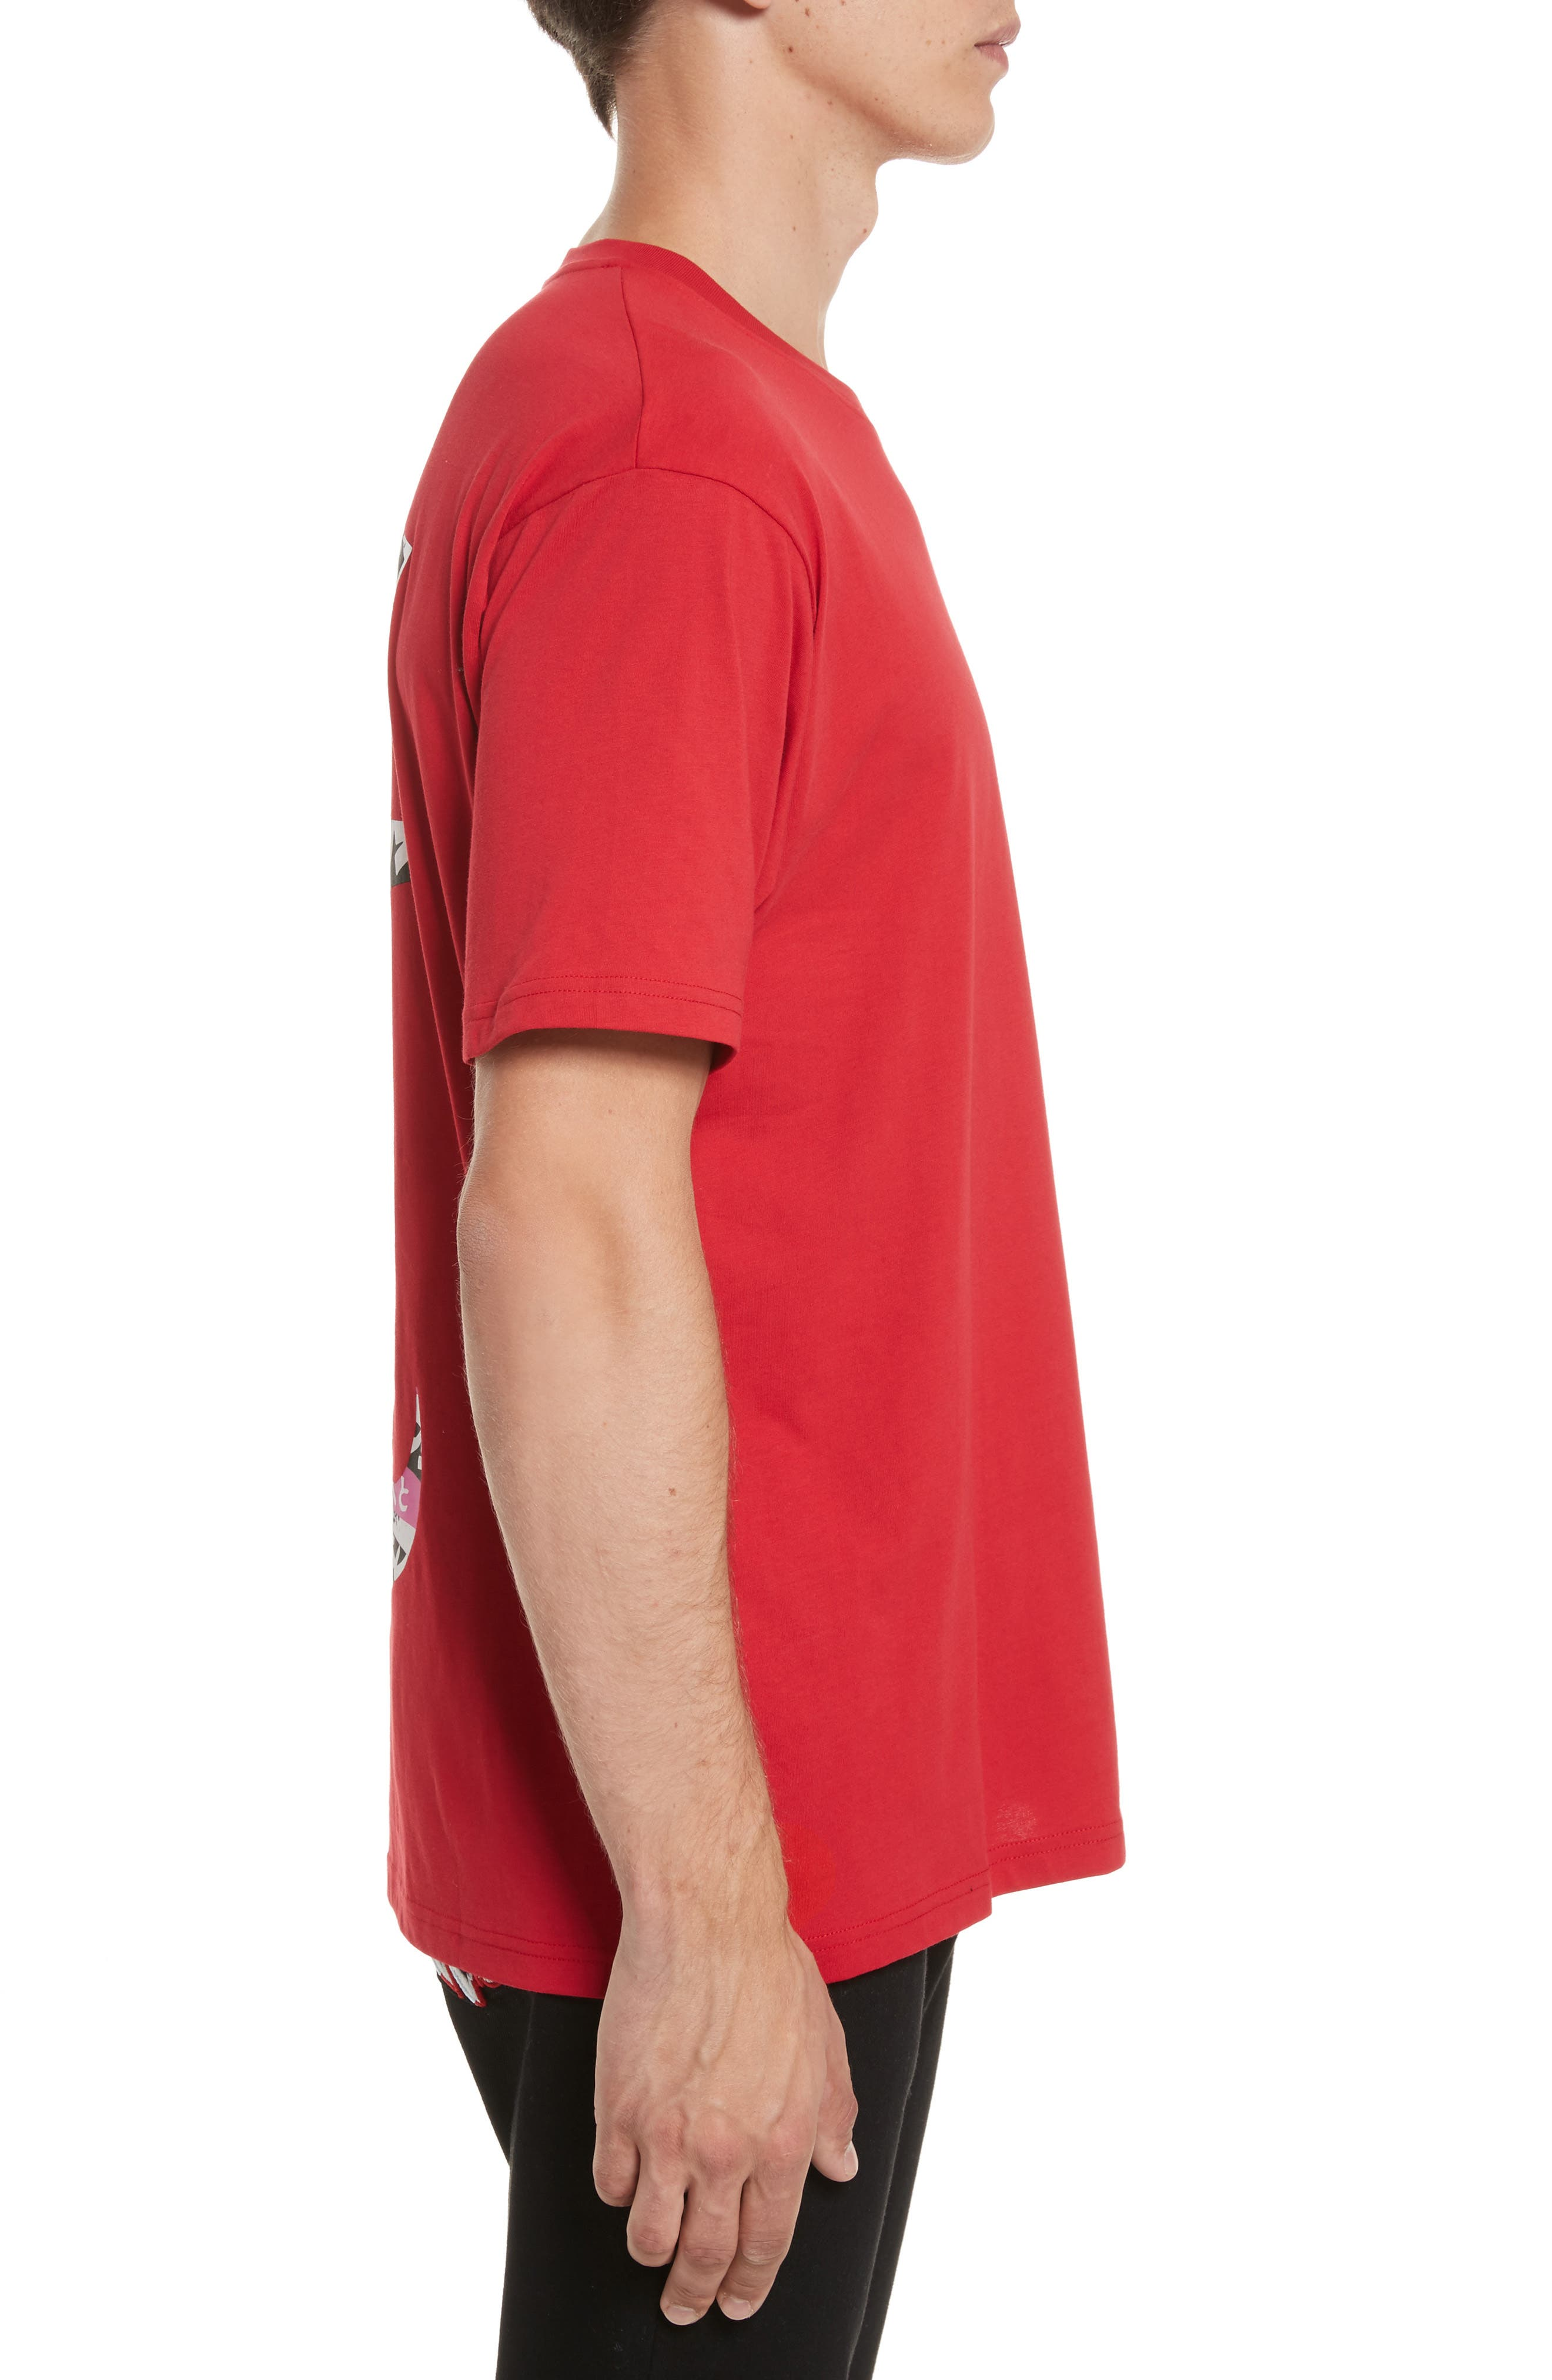 VERSUS by Versace Logo Graphic T-Shirt,                             Alternate thumbnail 3, color,                             Red